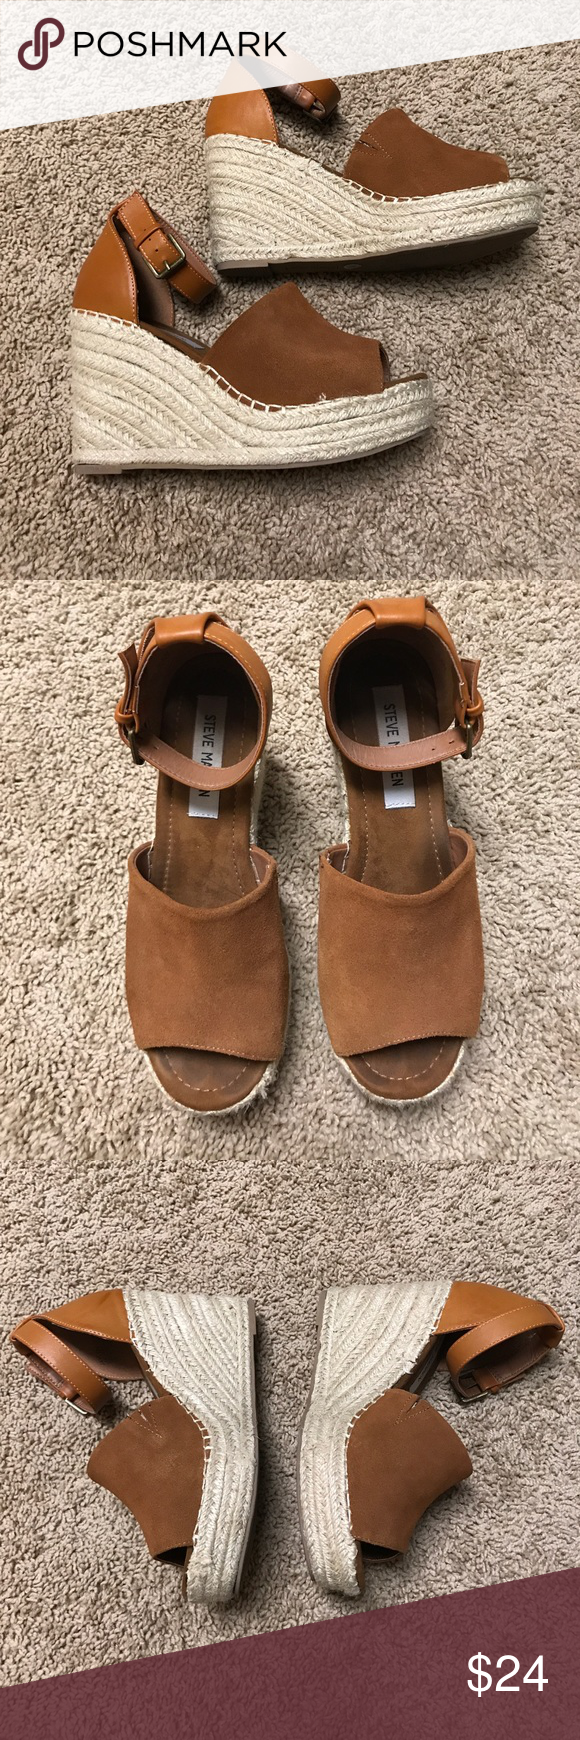 Steve Madden Wedges Wedge, size 7.5, so cute on, worn a few times Steve Madden Shoes Wedges